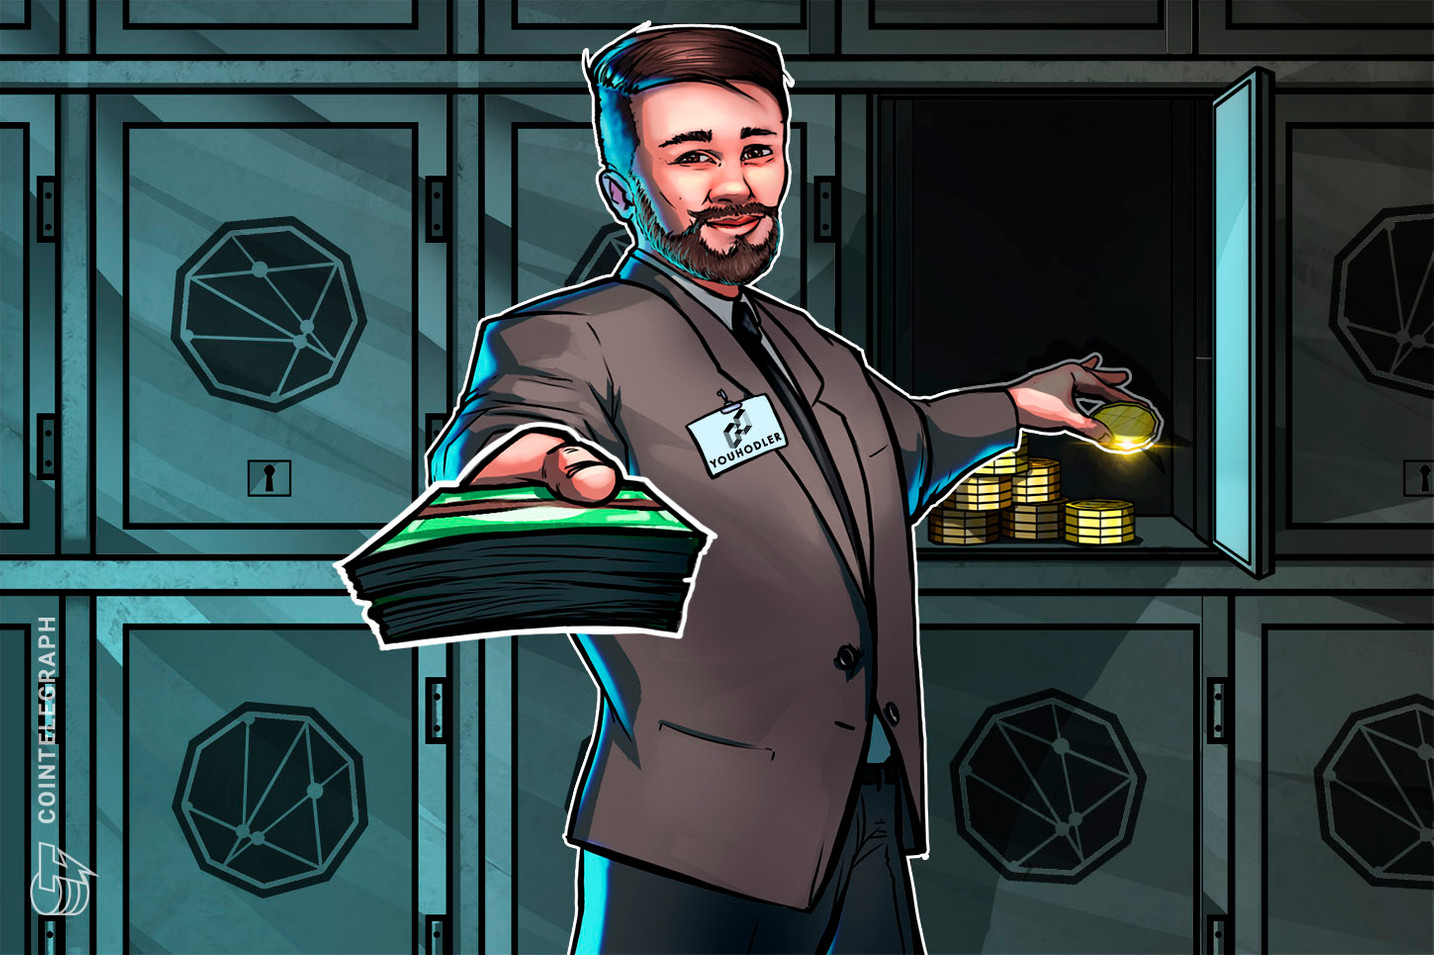 Financial Firm Offers 'Almost Instantaneous' Loans Up to $30,000 With Crypto as Collateral